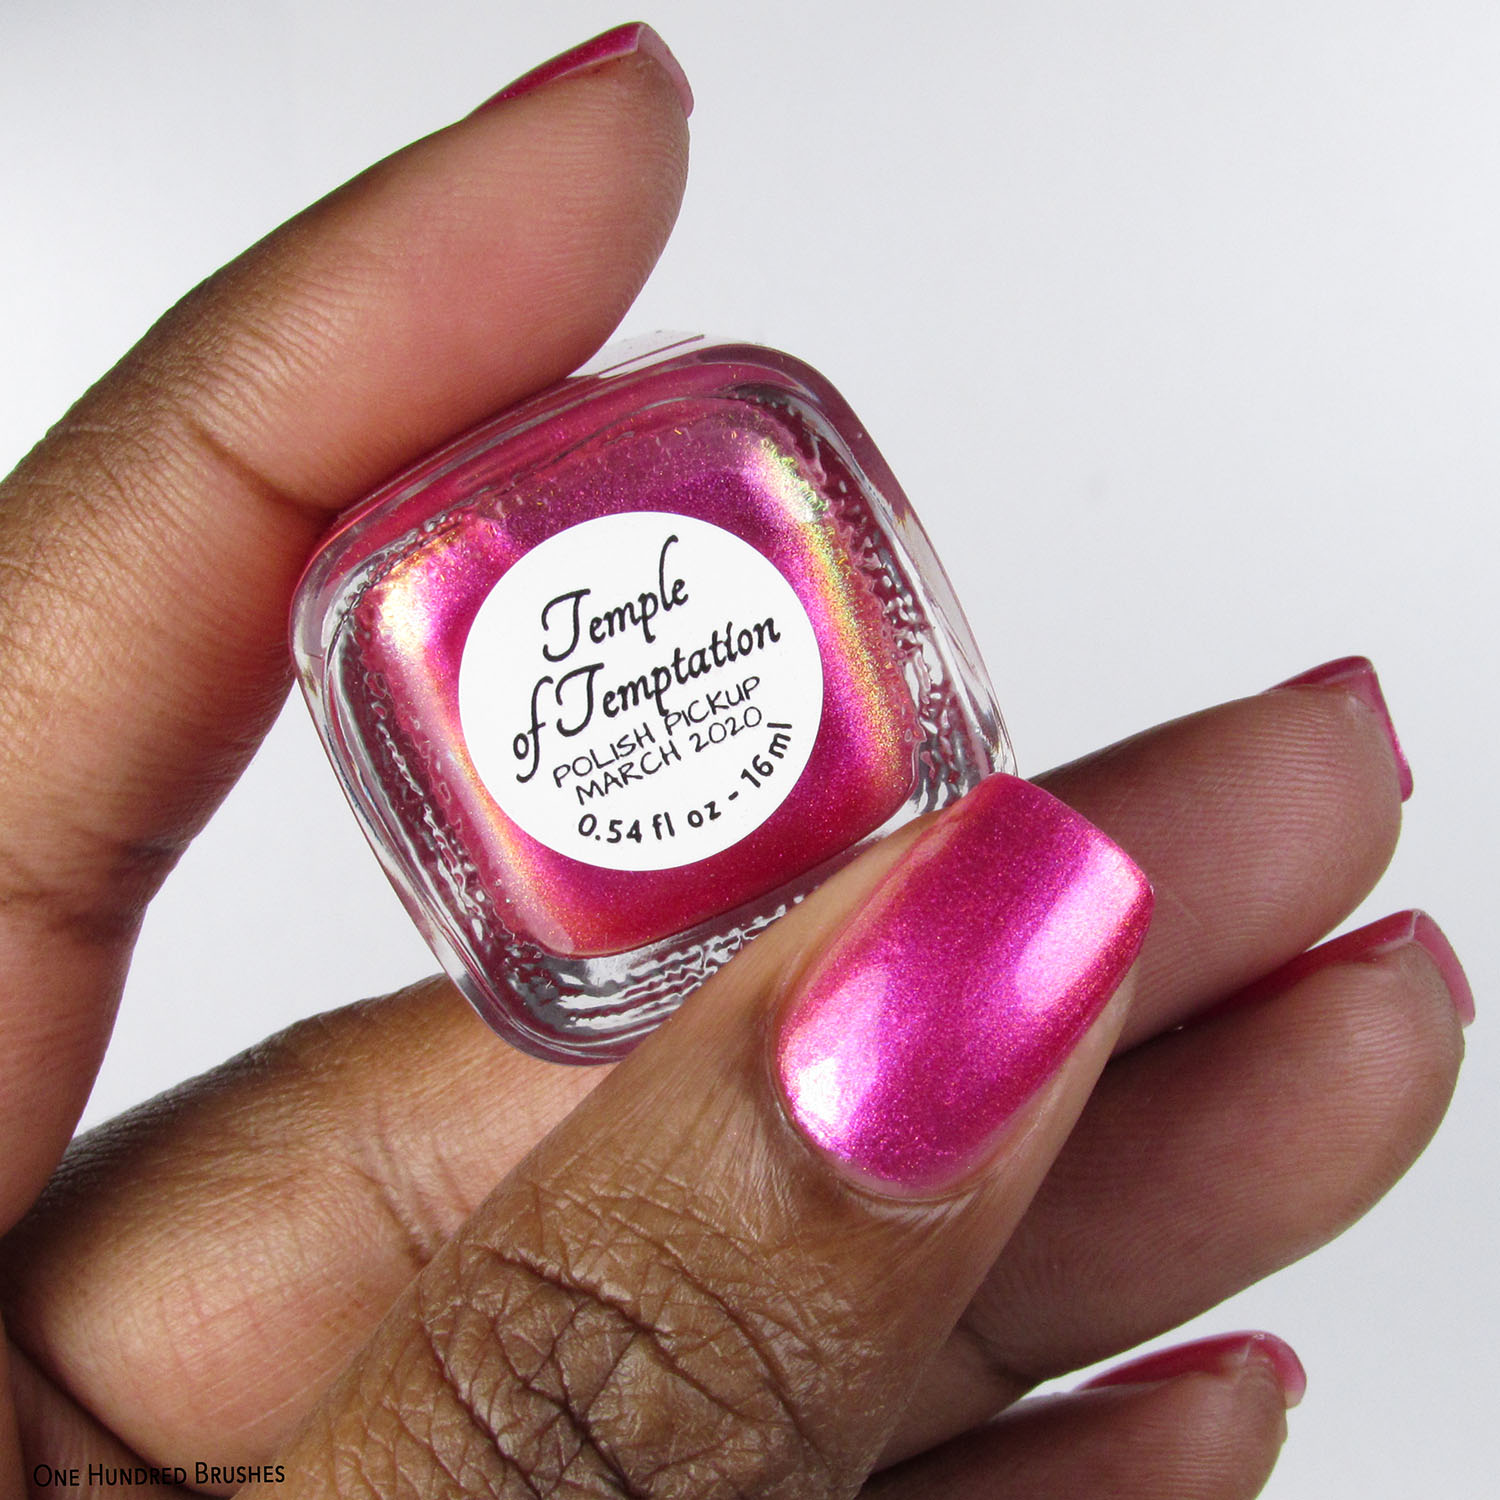 Temple of Temptation - JReine Cosmetics - Polish Pickup March 2020